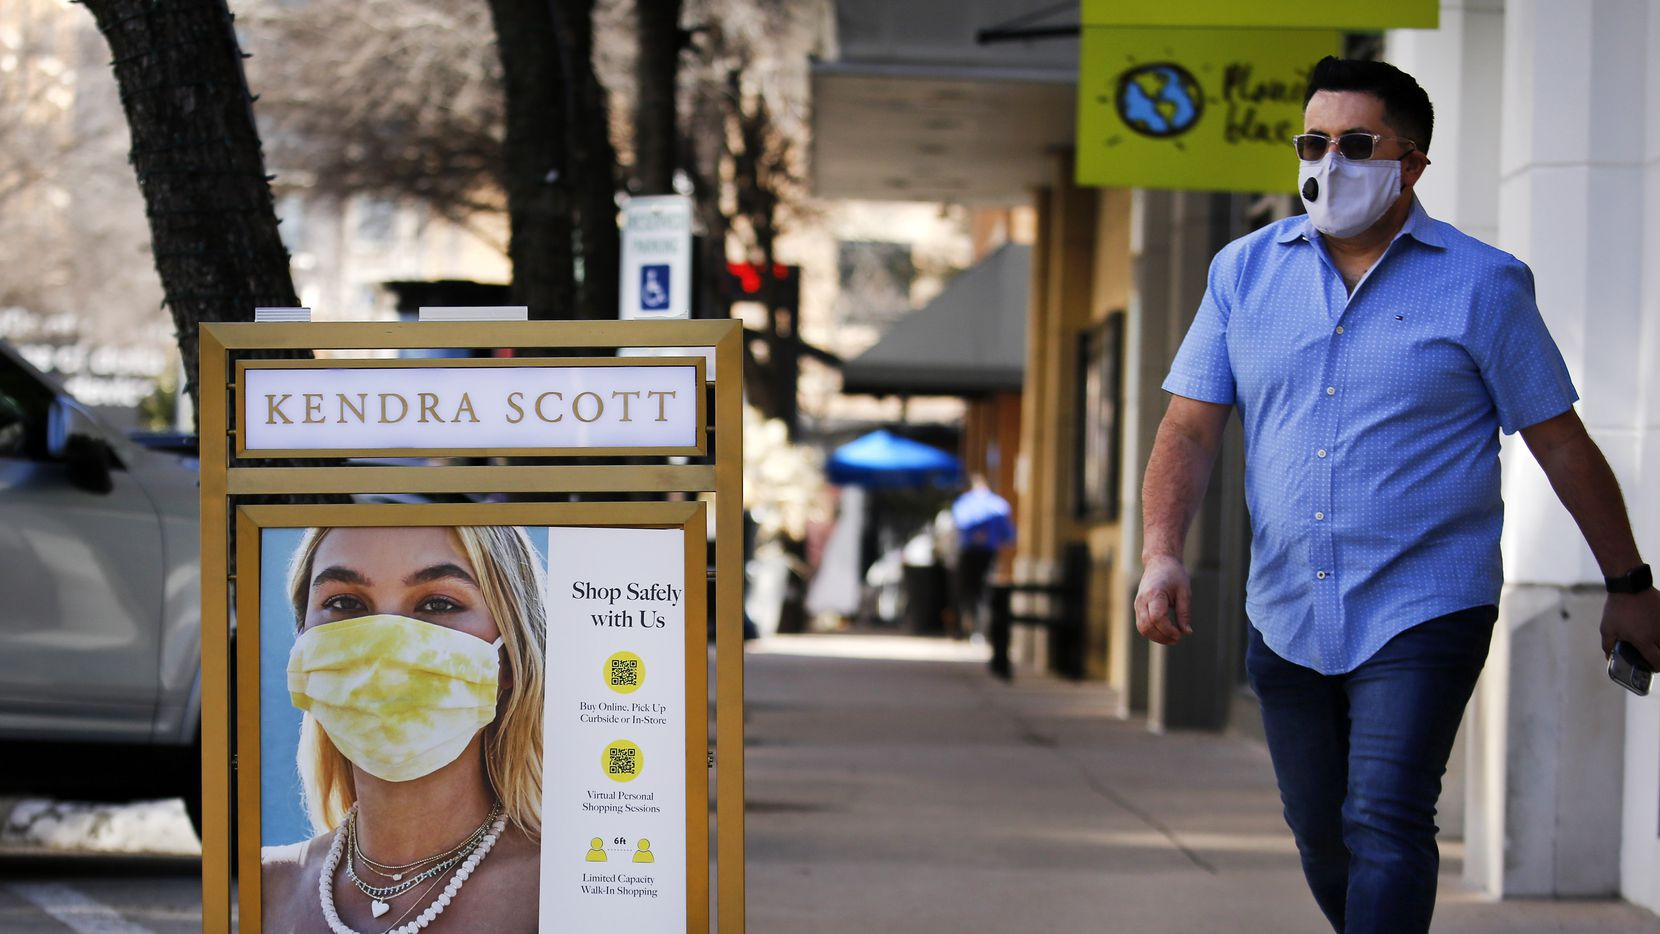 A man walks past a COVID practices sign outside the Kendra Scott store at the West Village in Dallas, Tuesday, March 2, 2021. Upon the one-year anniversary of the COVID-19 pandemic, Texas Governor Greg Abbott announced he plans to end the statewide mask mandate. He also plans on reopening the State of Texas to all businesses.